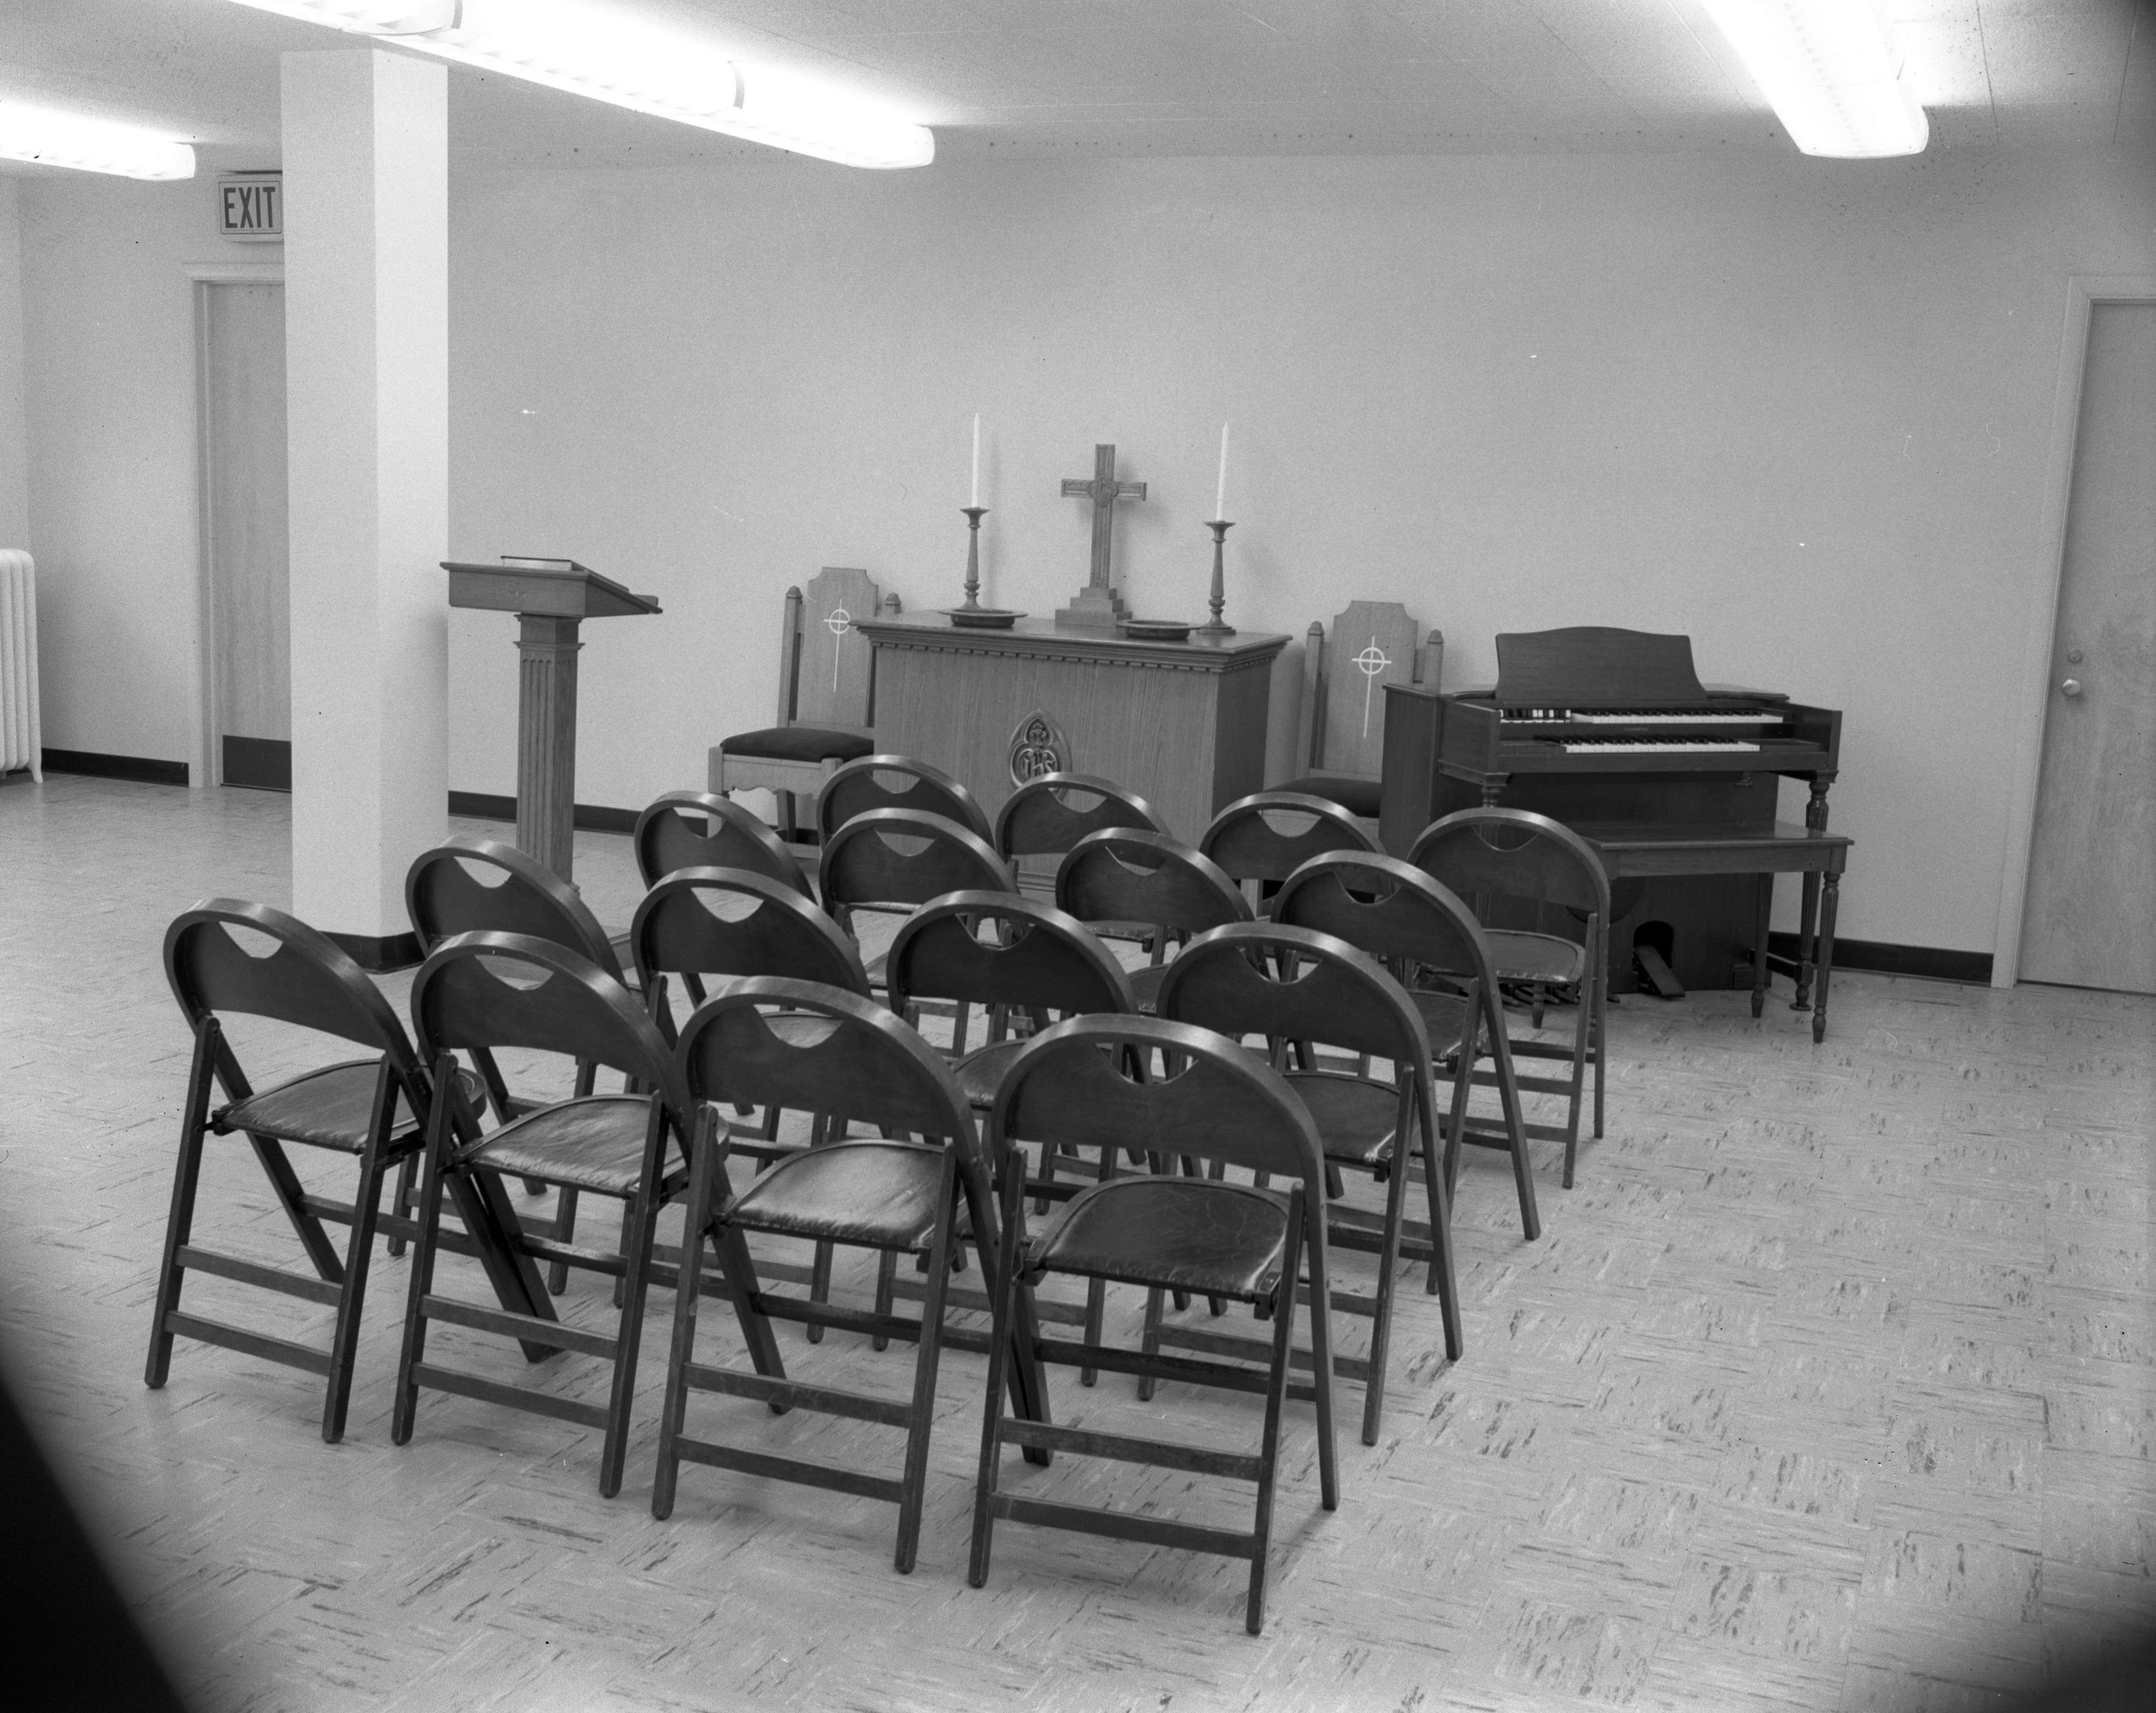 Addition to First Presbyterian Church of Ypsilanti, January 1958 image